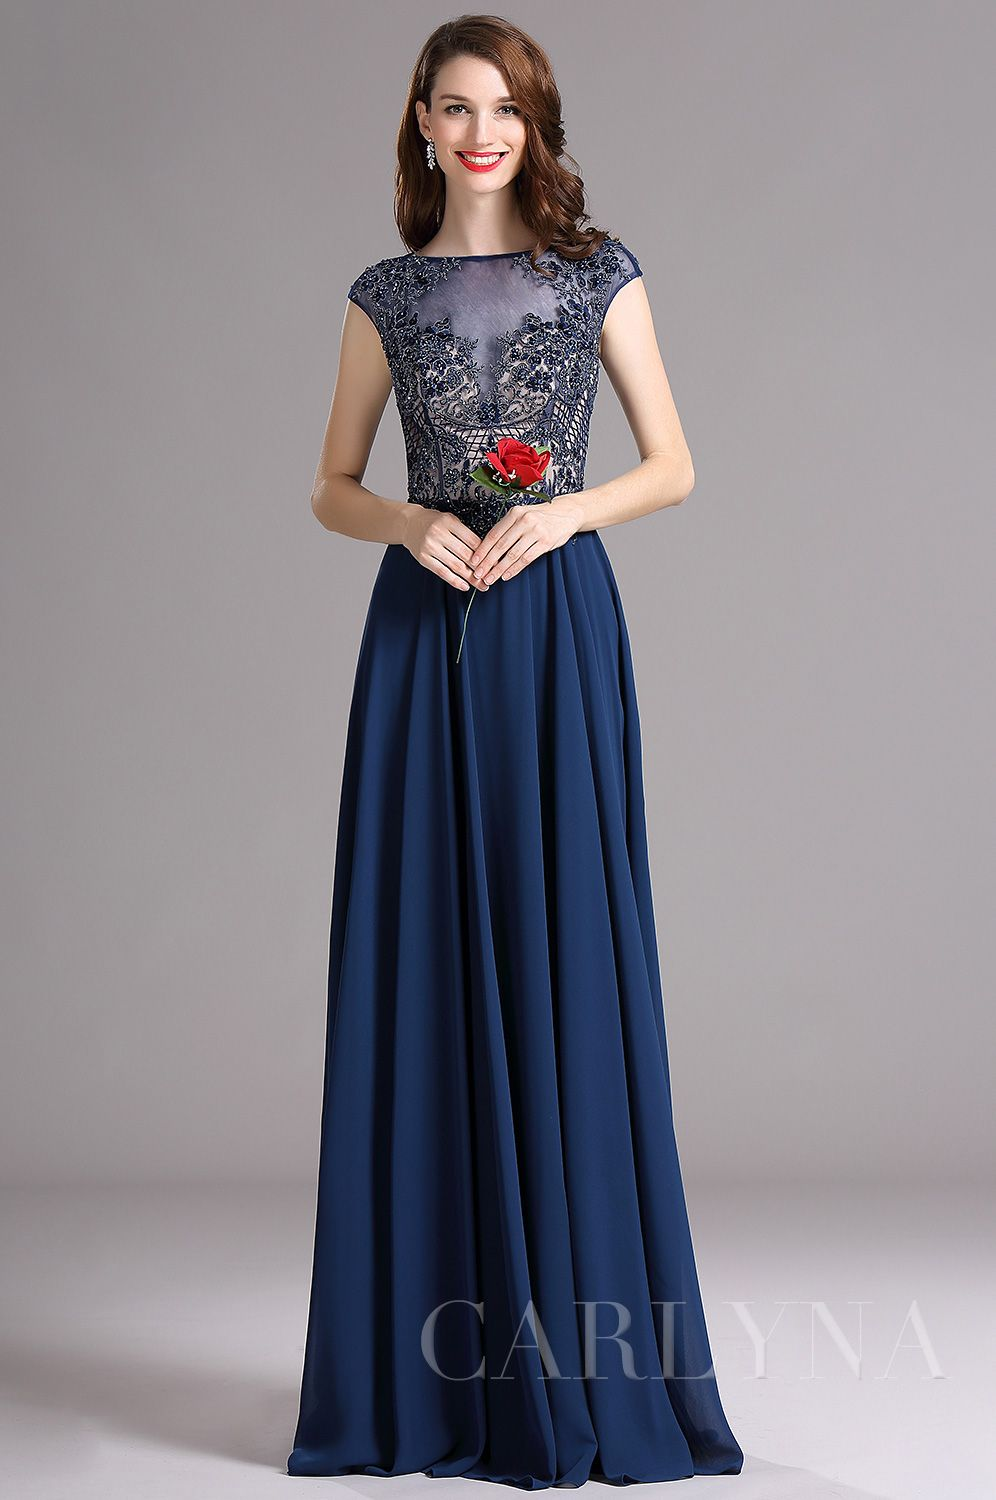 Usd carlyna blue cap sleeves illusion neckline beaded prom